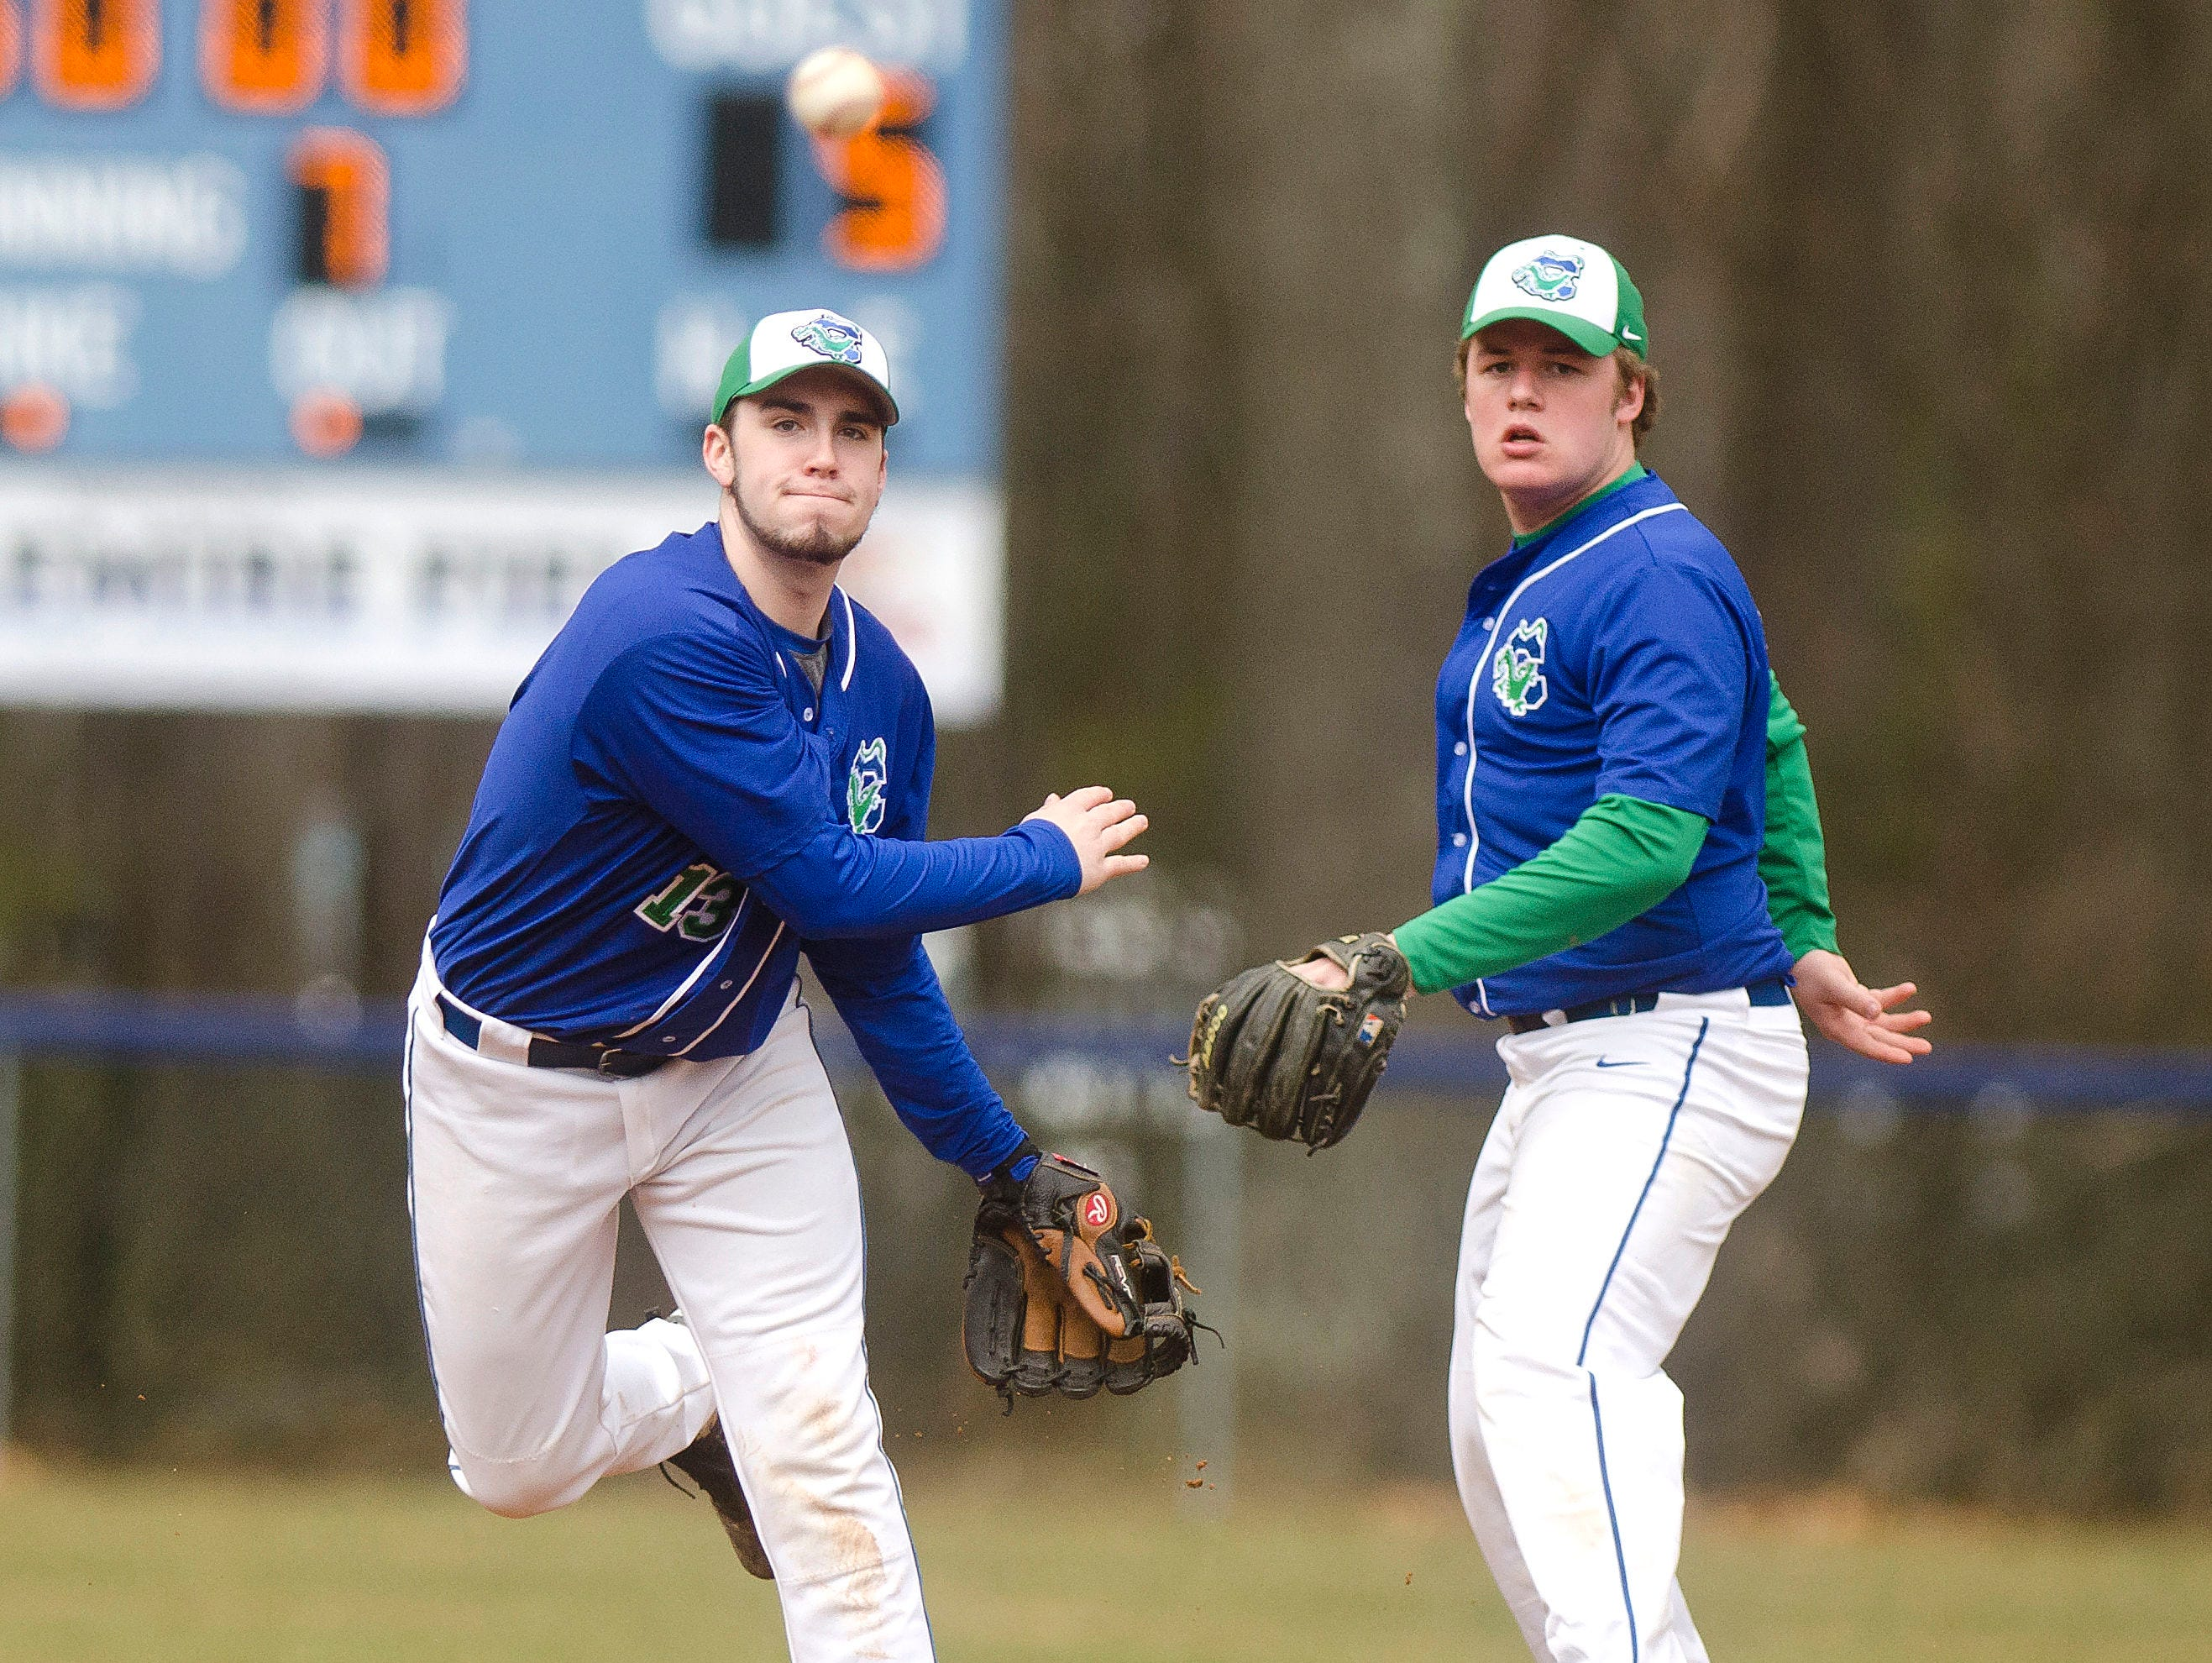 Colchester shortstop Derek Sanderson, left, throws a runner out at first to complete a double play started by Jared Antoniak, right, during last year's game against Mount Abraham.